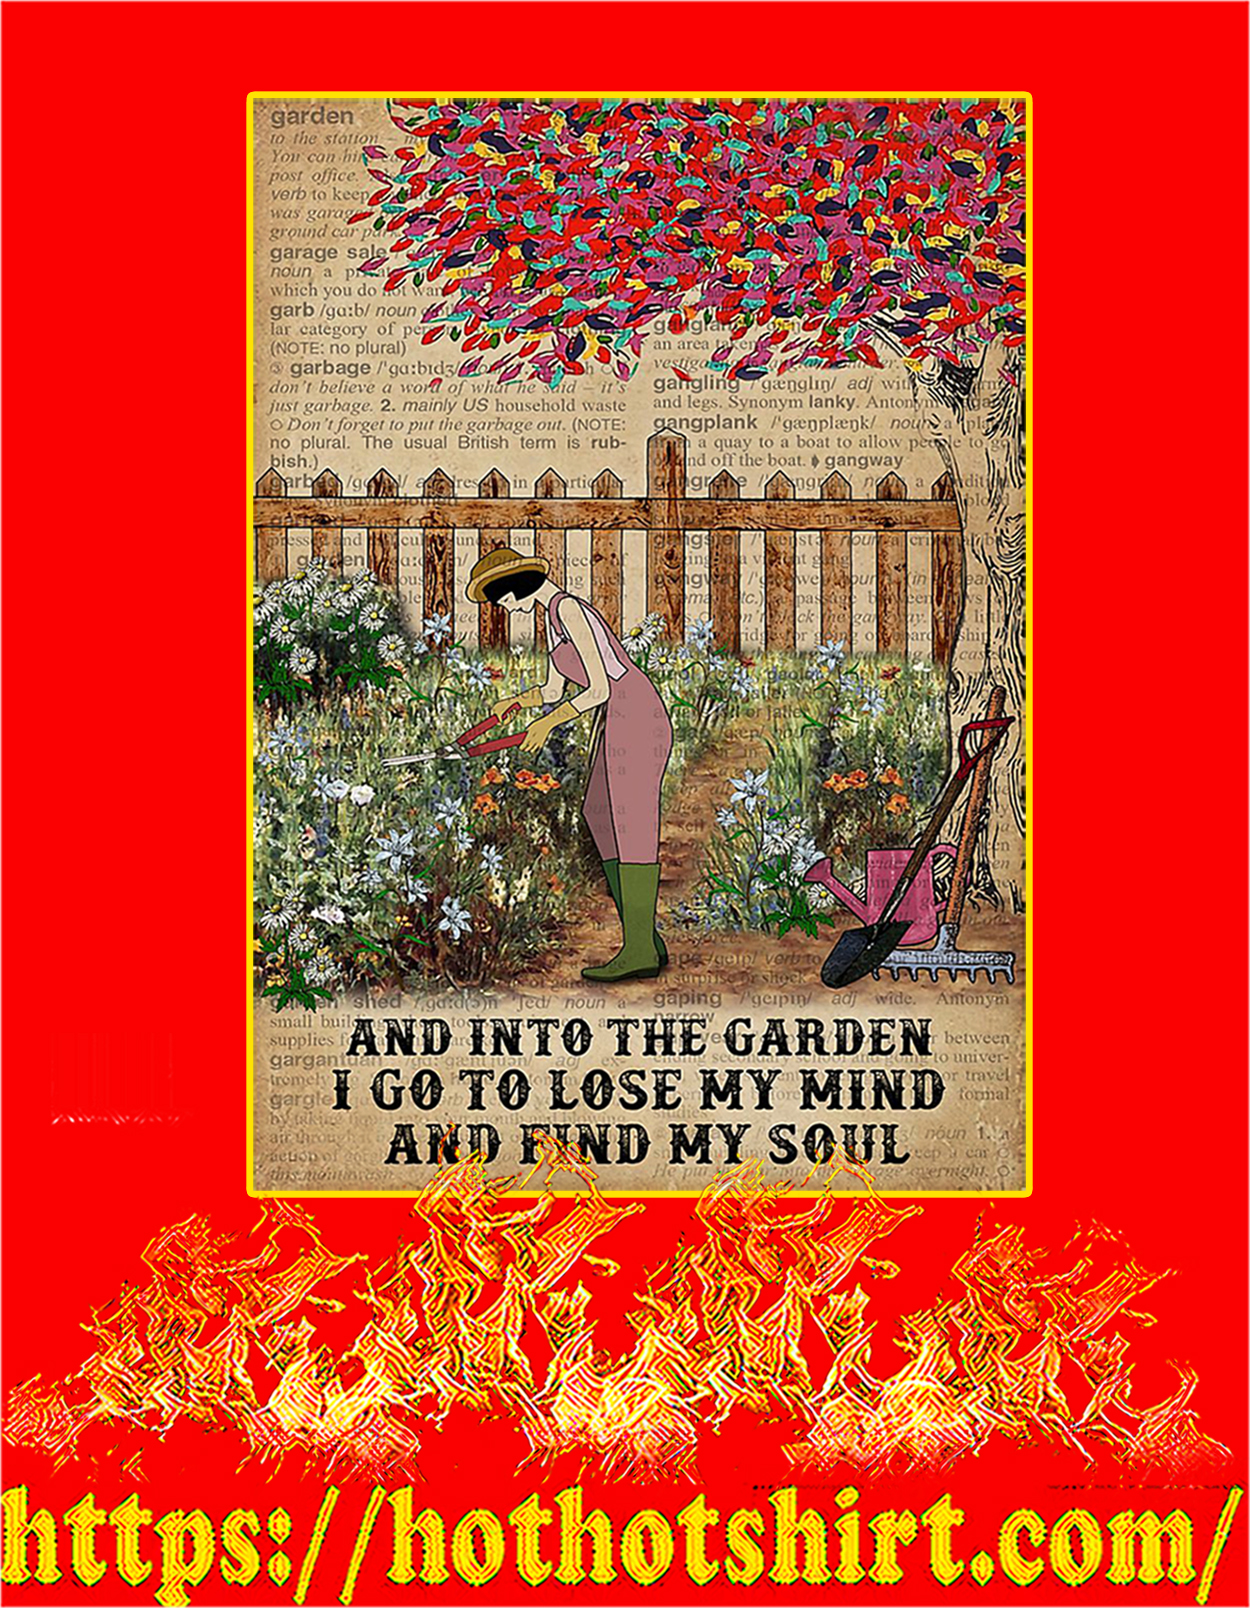 And into the garden I go to lose my mind and find my soul poster - A3